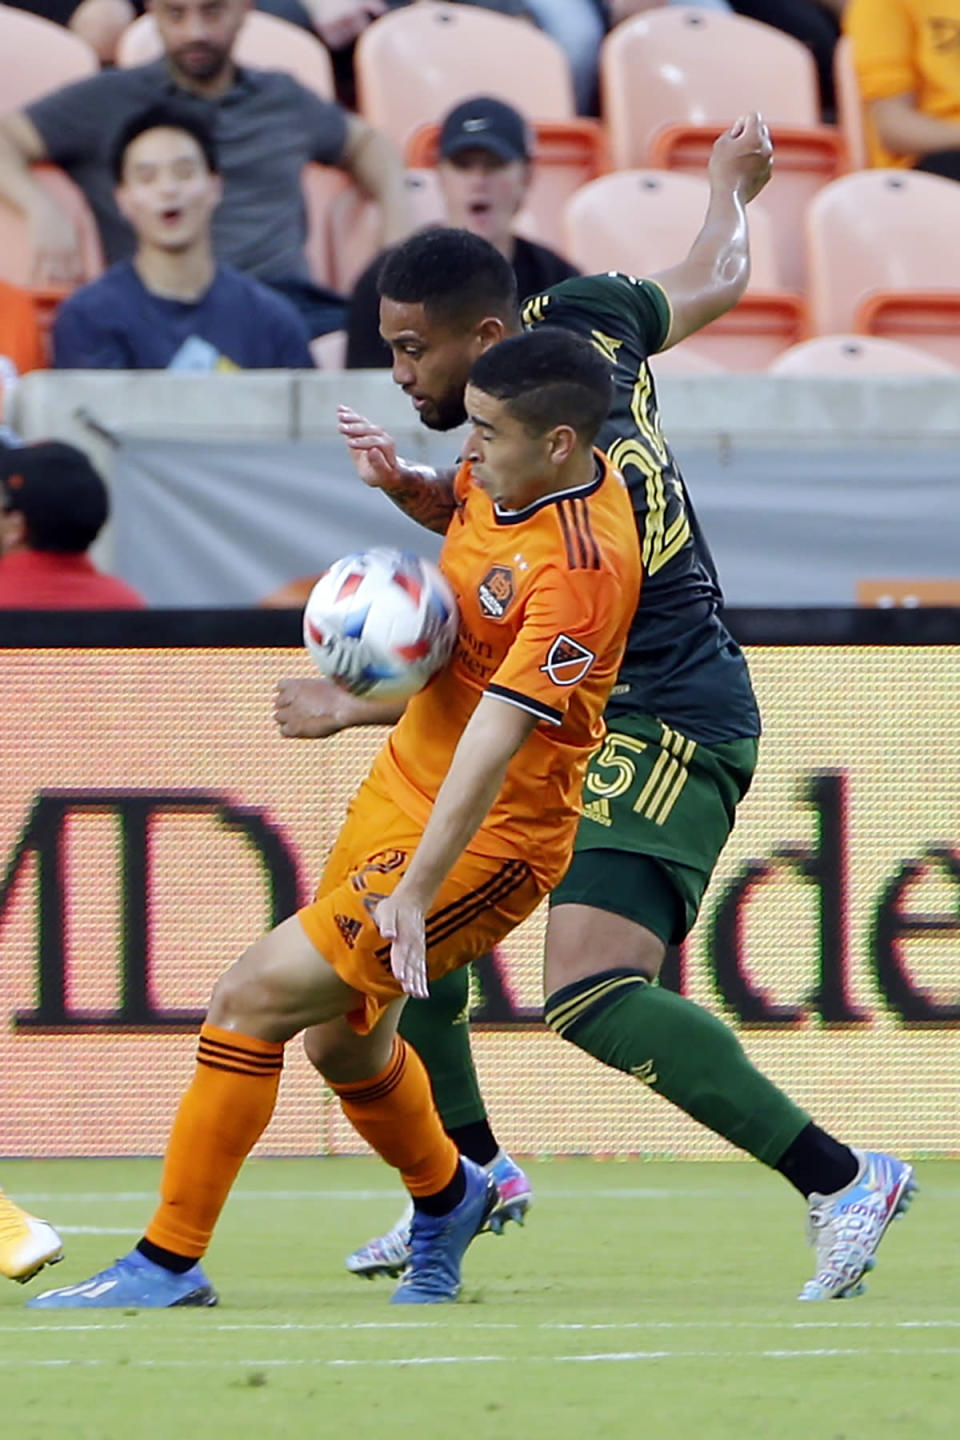 Houston Dynamo midfielder Matias Vera, front, brings down the ball in front of Portland Timbers defender Bill Tuiloma, back during the first half of an MLS soccer match Wednesday, June 23, 2021, in Houston. (AP Photo/Michael Wyke)